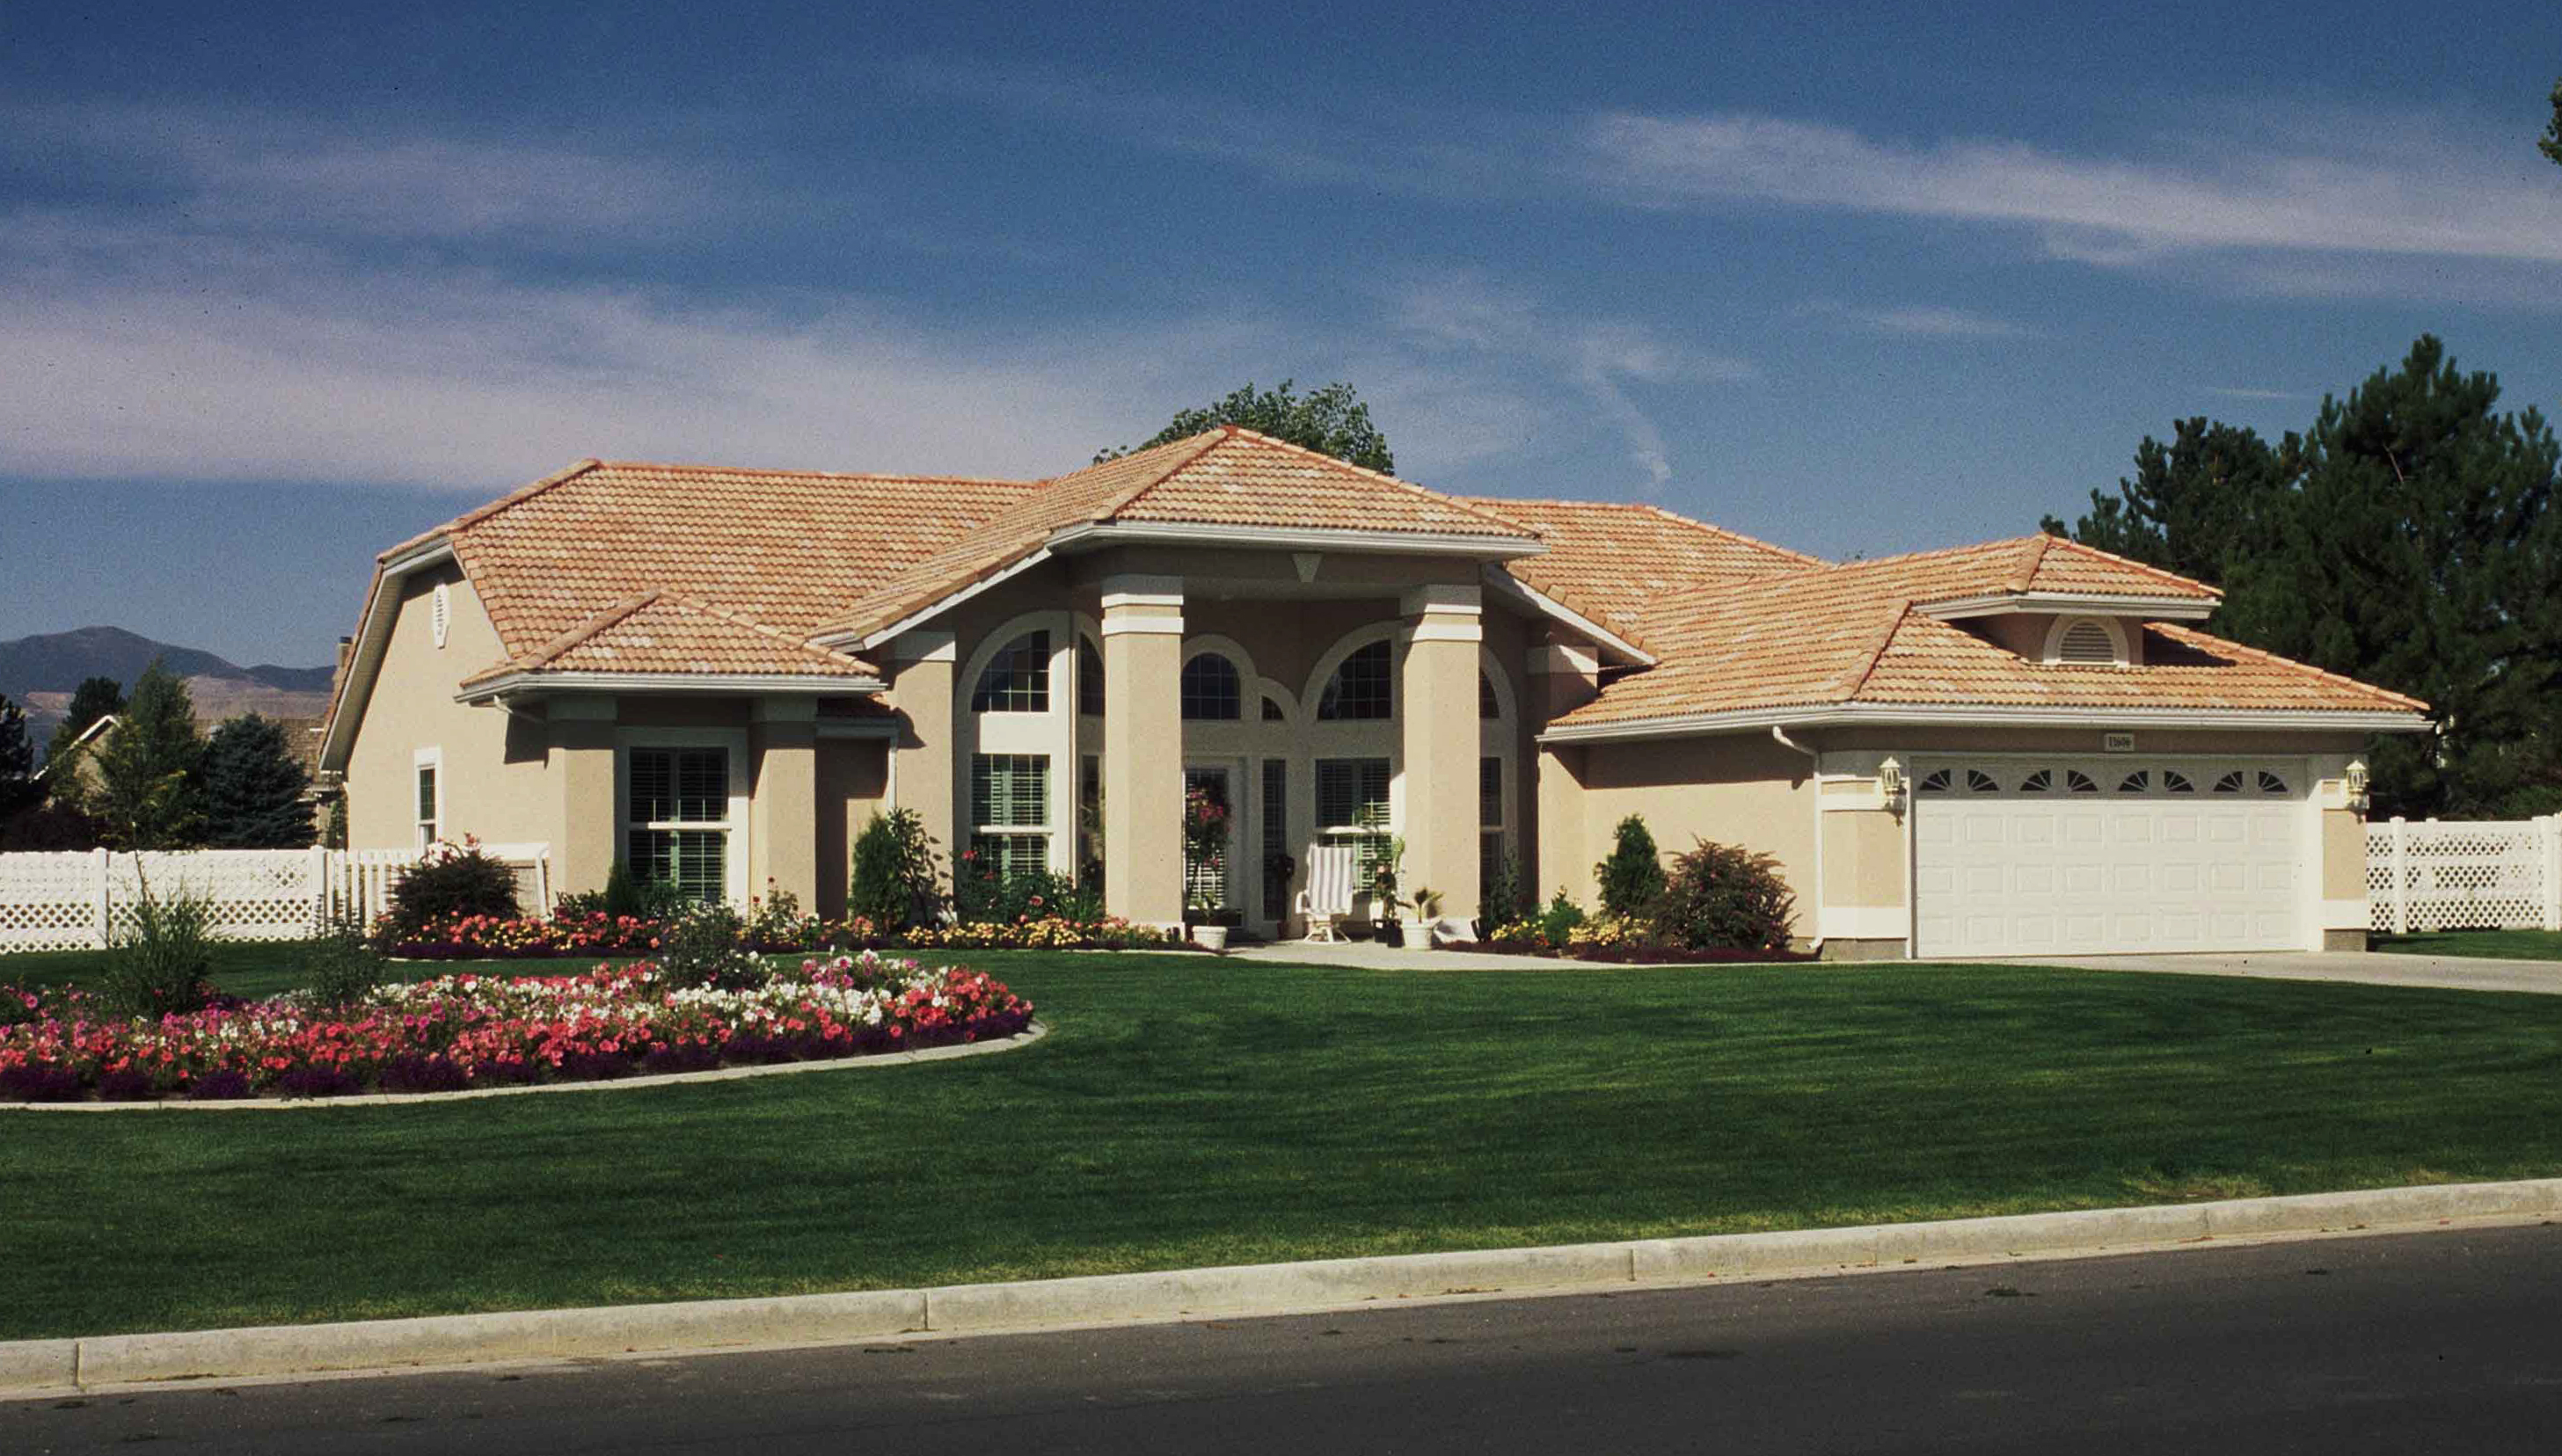 Garage Roofs Contemporary House Plan 190 1006 4 Bedrm 2041 Sq Ft